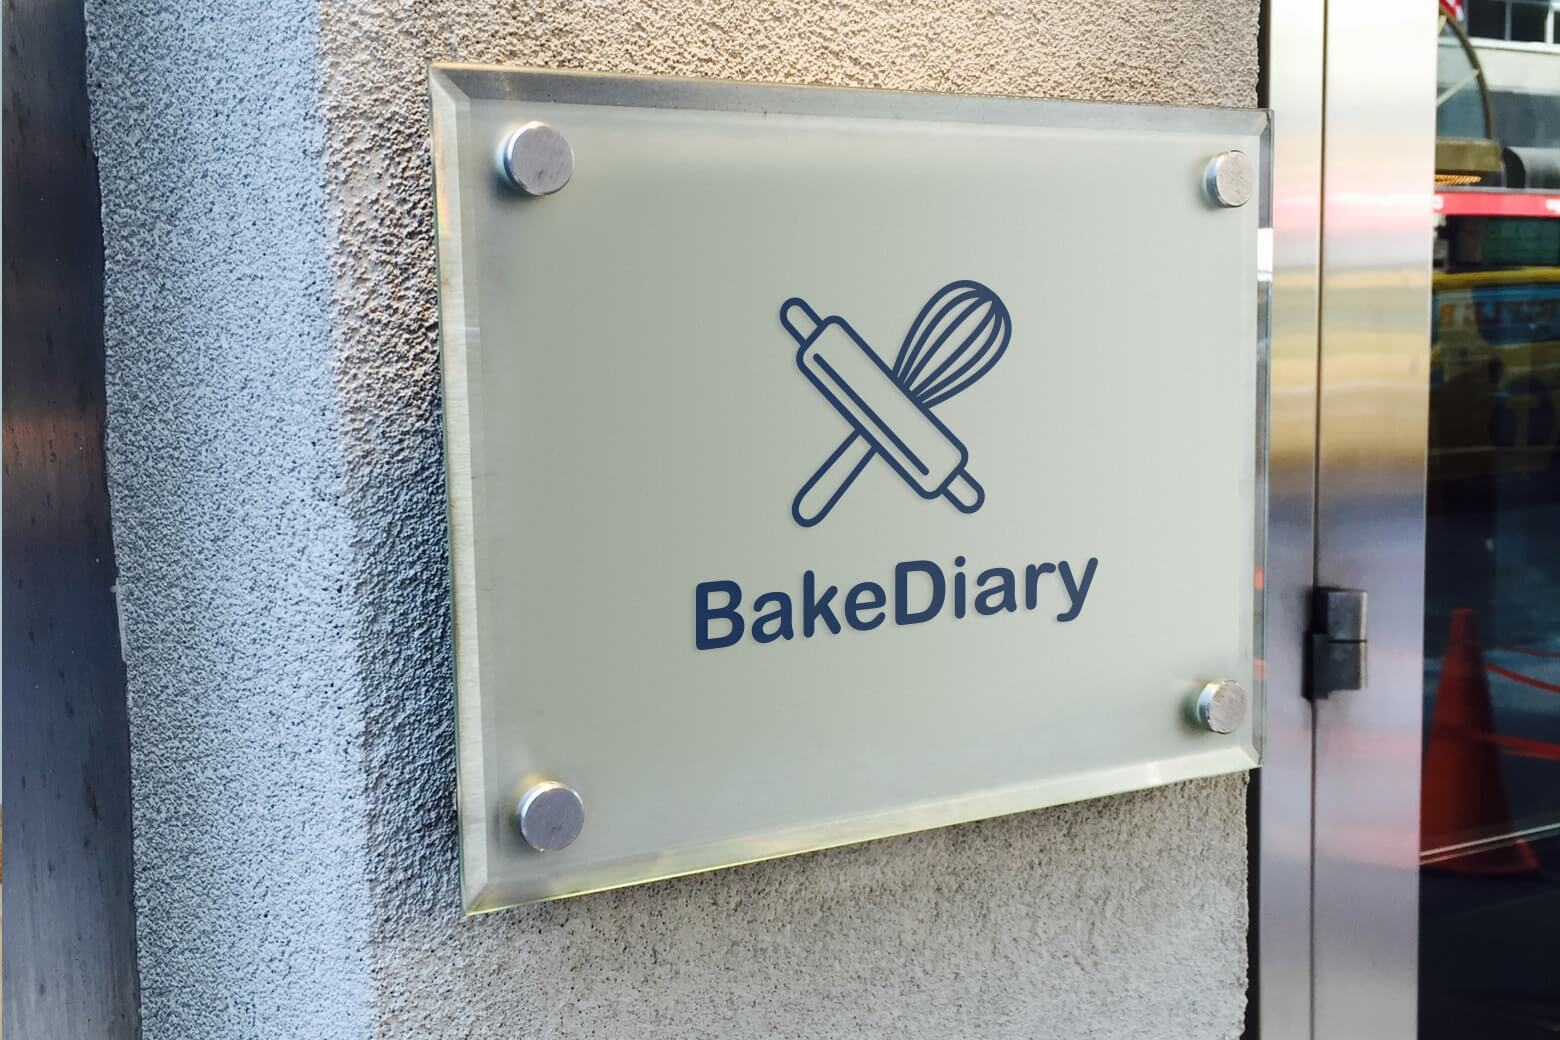 Bake Diary logo on office wall